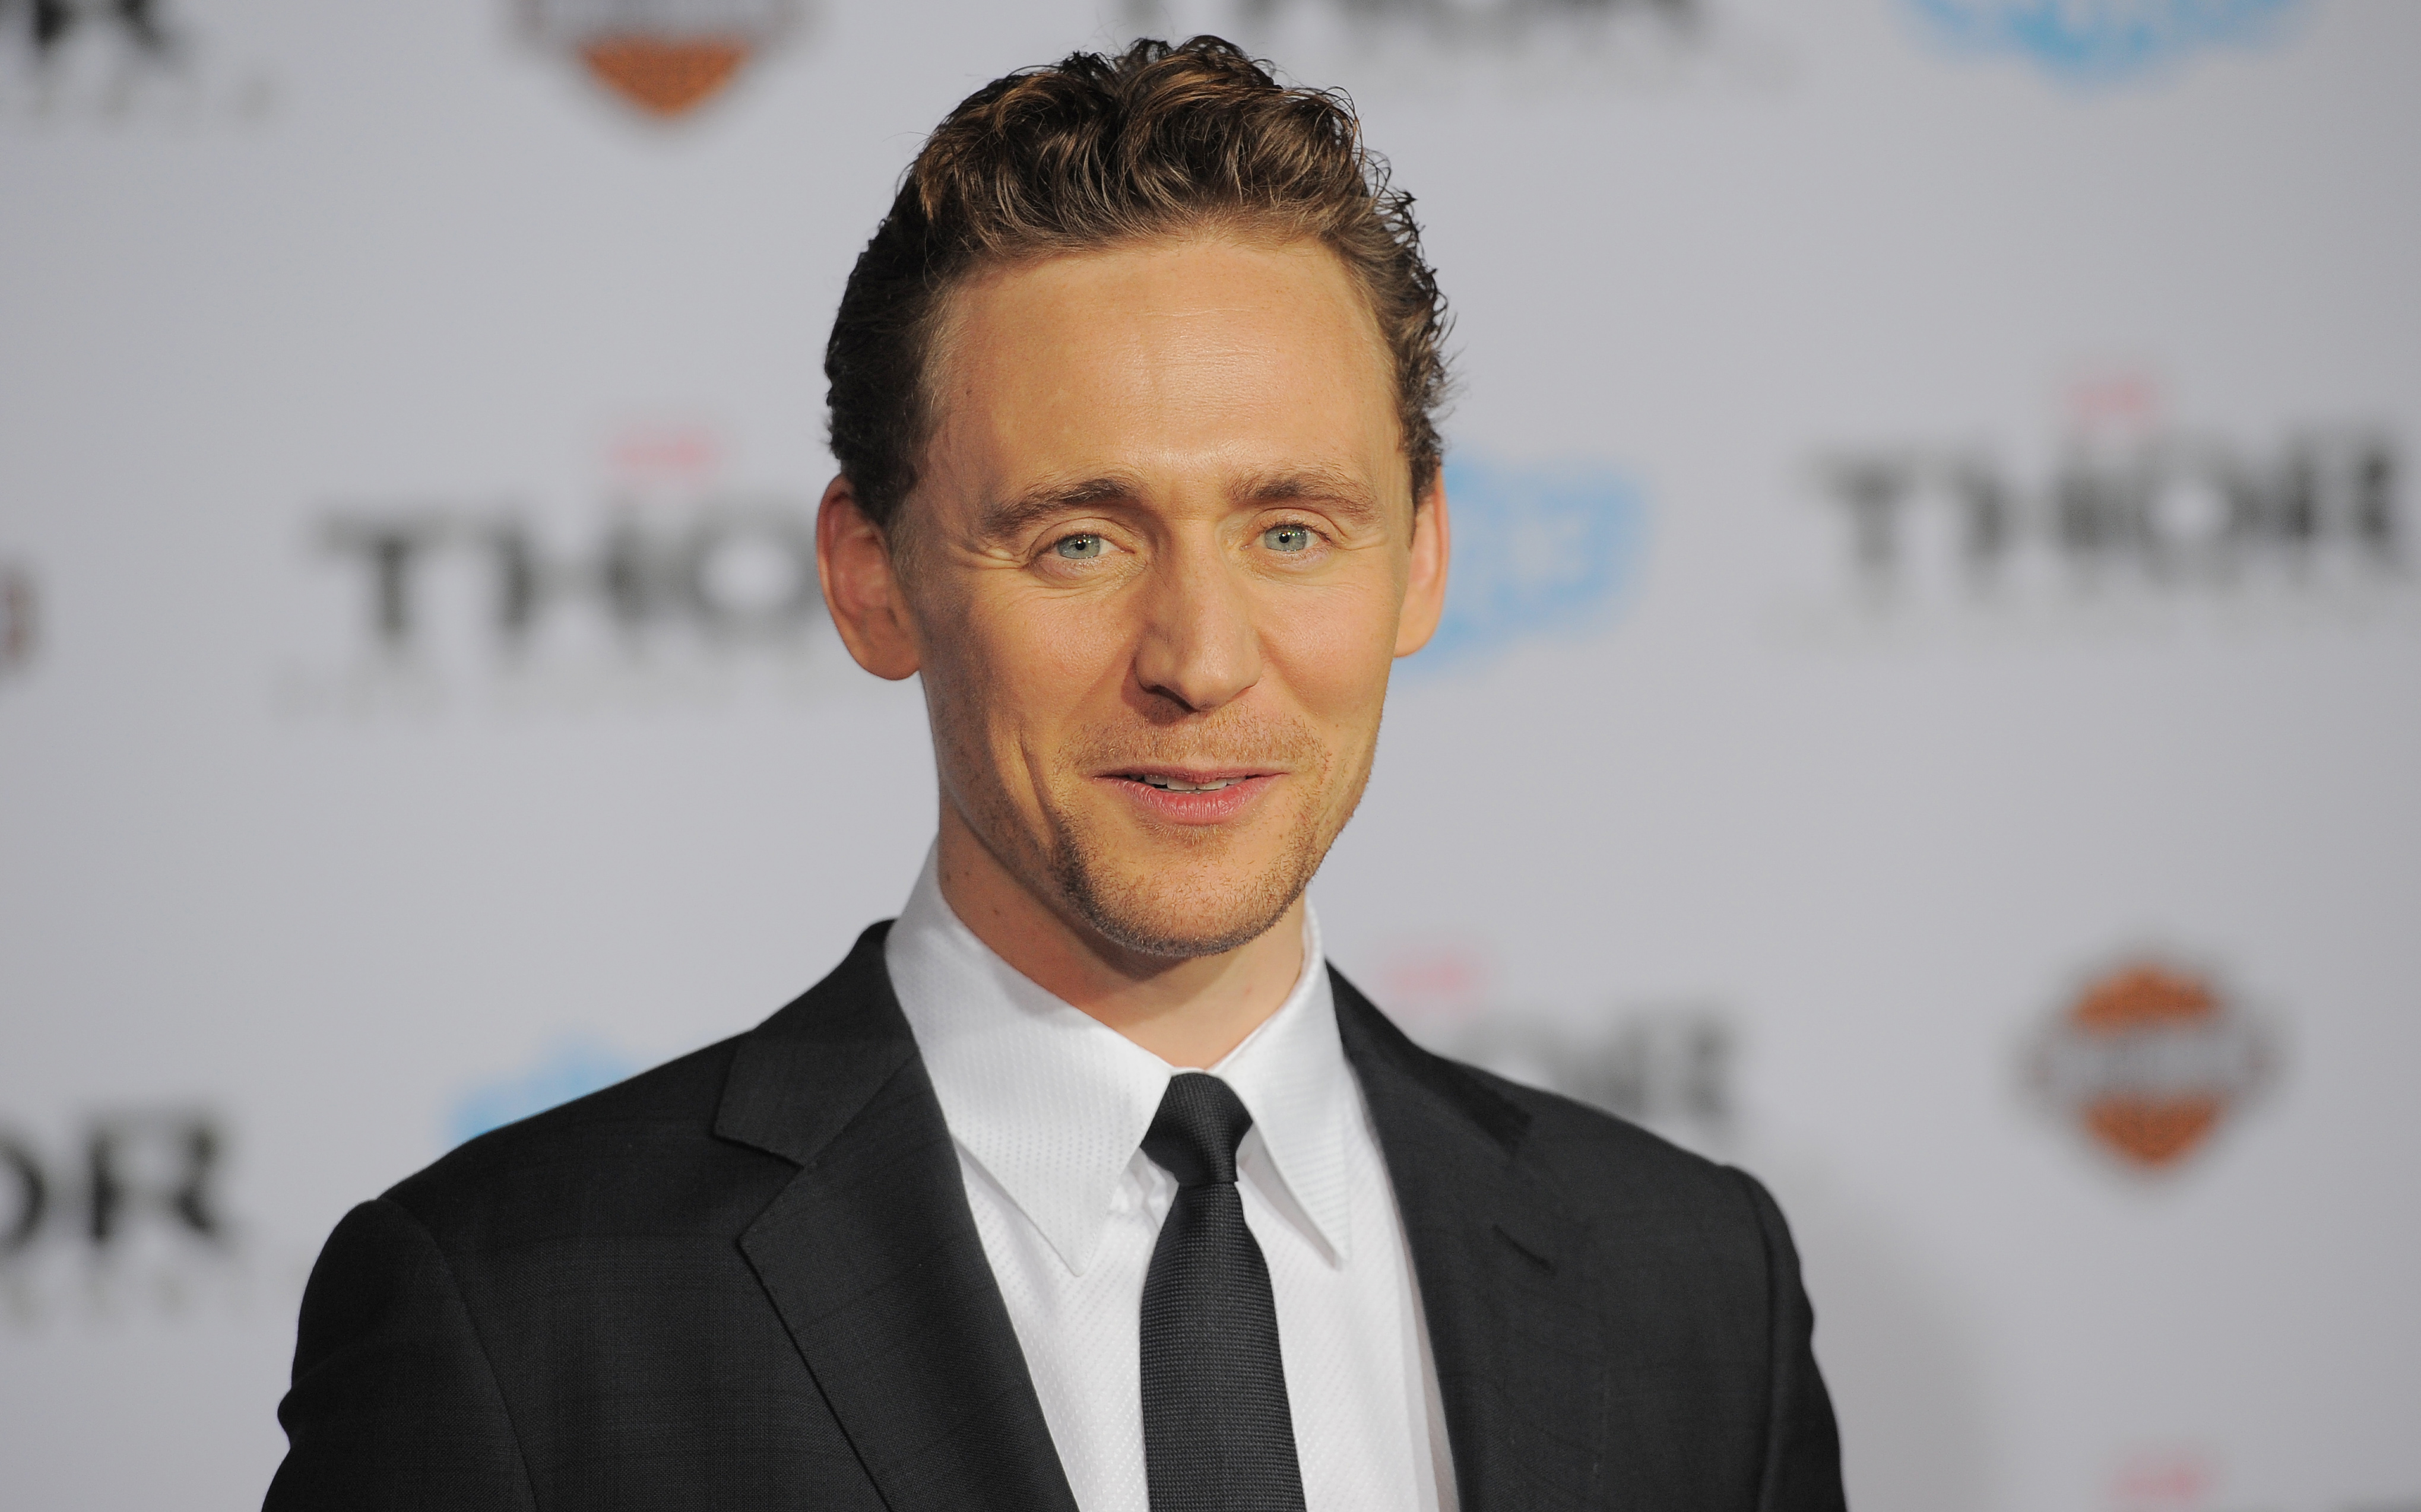 Ranking Tom Hiddlestons Hairstyles From His Long Loki Locks To His